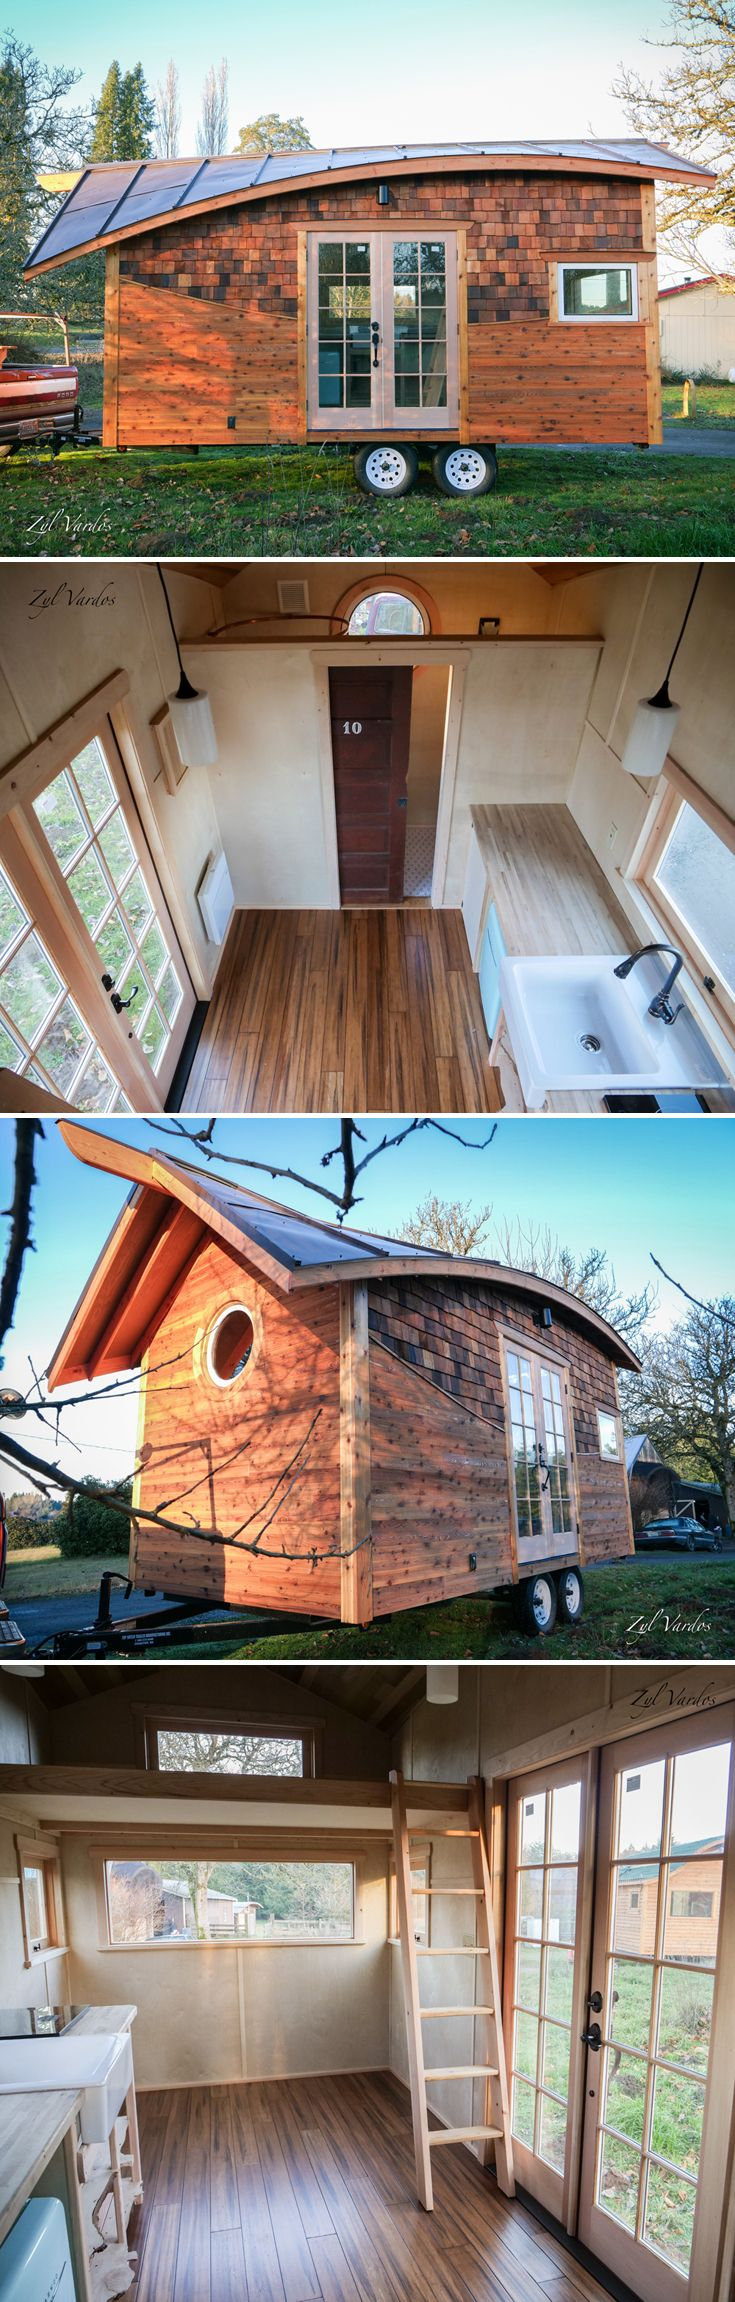 The latest work of art from Zyl Vardos is the Mura, an 18-foot tiny house built for one of Abel Zyl's friends, Jenn Bruyer. As with each Zyl Vardos tiny house, the Mura has a creative design that looks like it belongs in a fairytale.